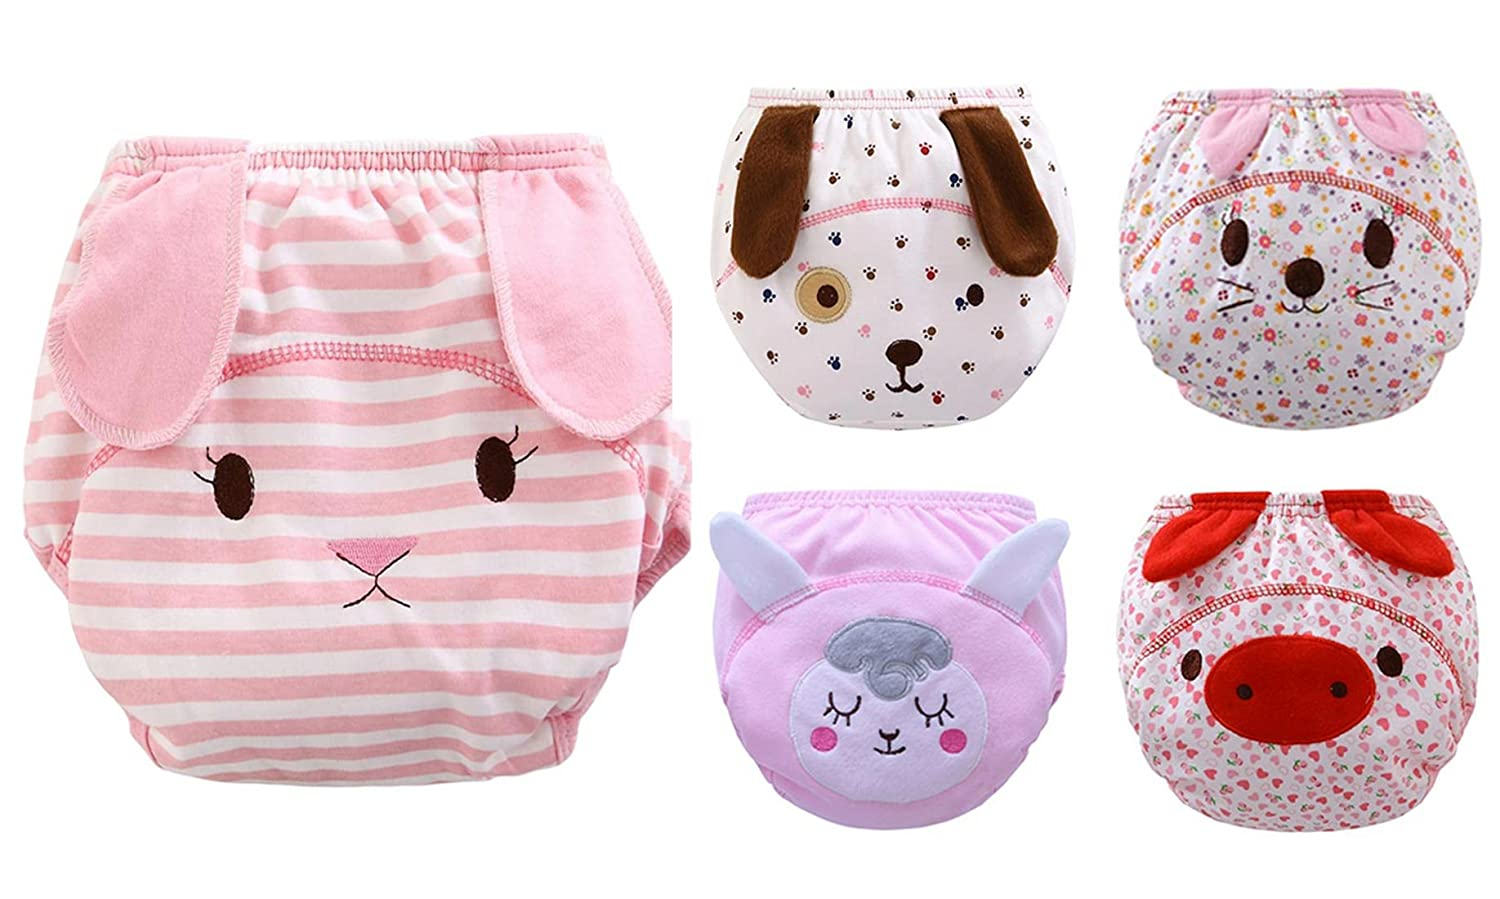 5 Pcs Baby Adorable Embroidery Pattern Training Pants Diaper Underwear for Toddler HANIBEIWA JWBK0466